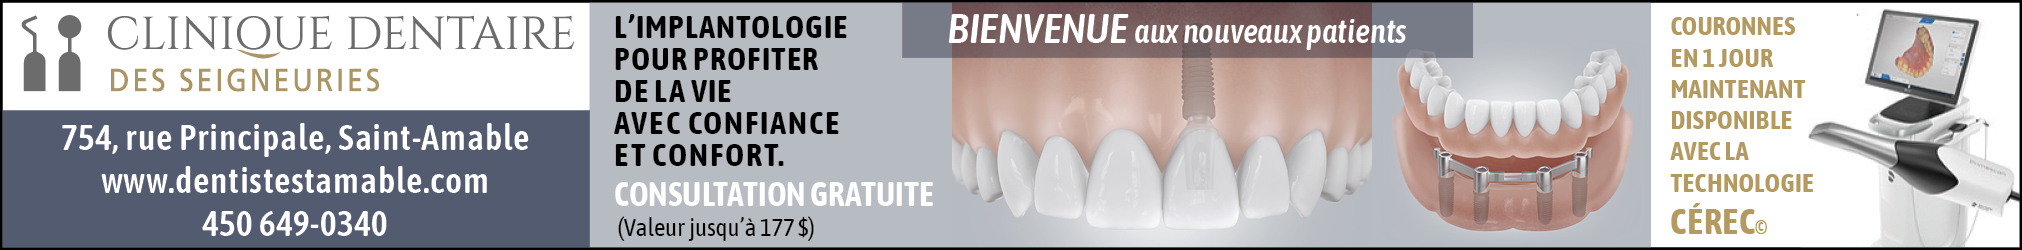 Clinique dentaire St-Amable